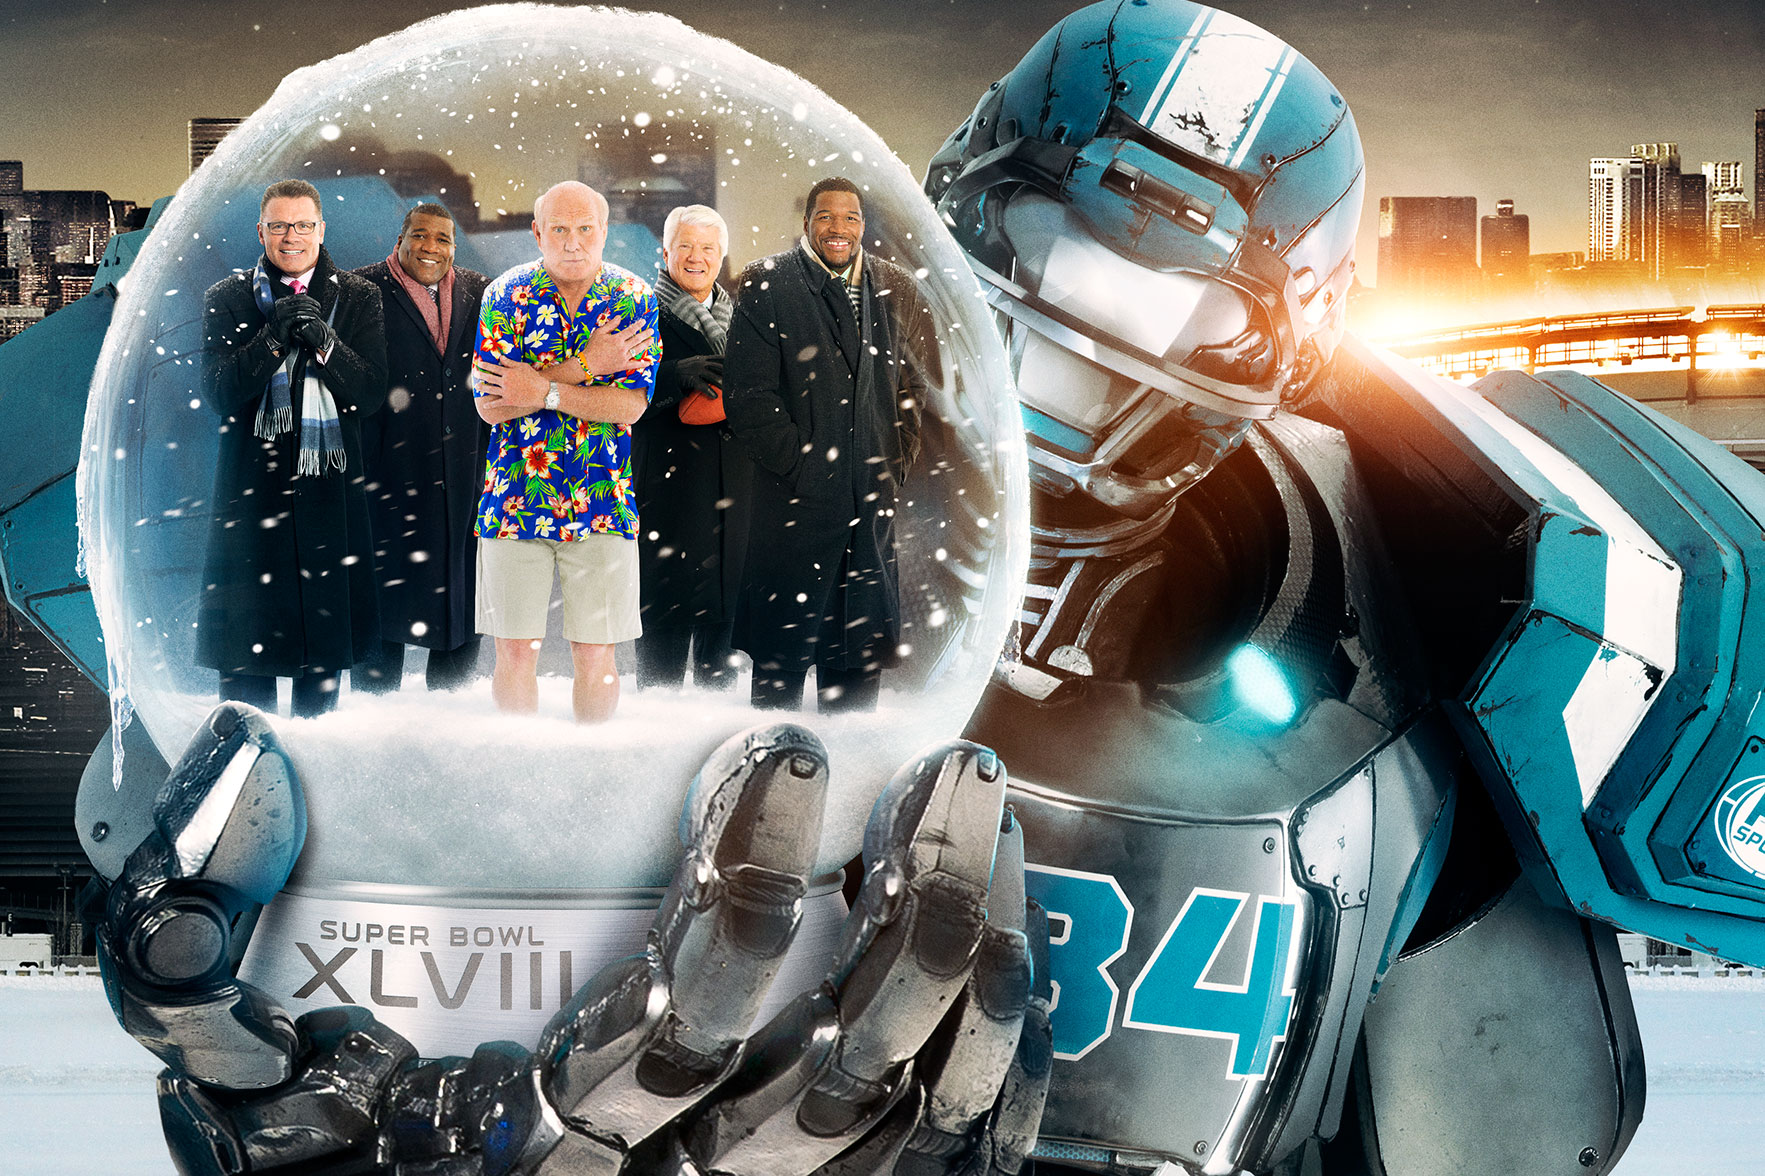 Fox Sports | Superbowl XLVIII Key Art